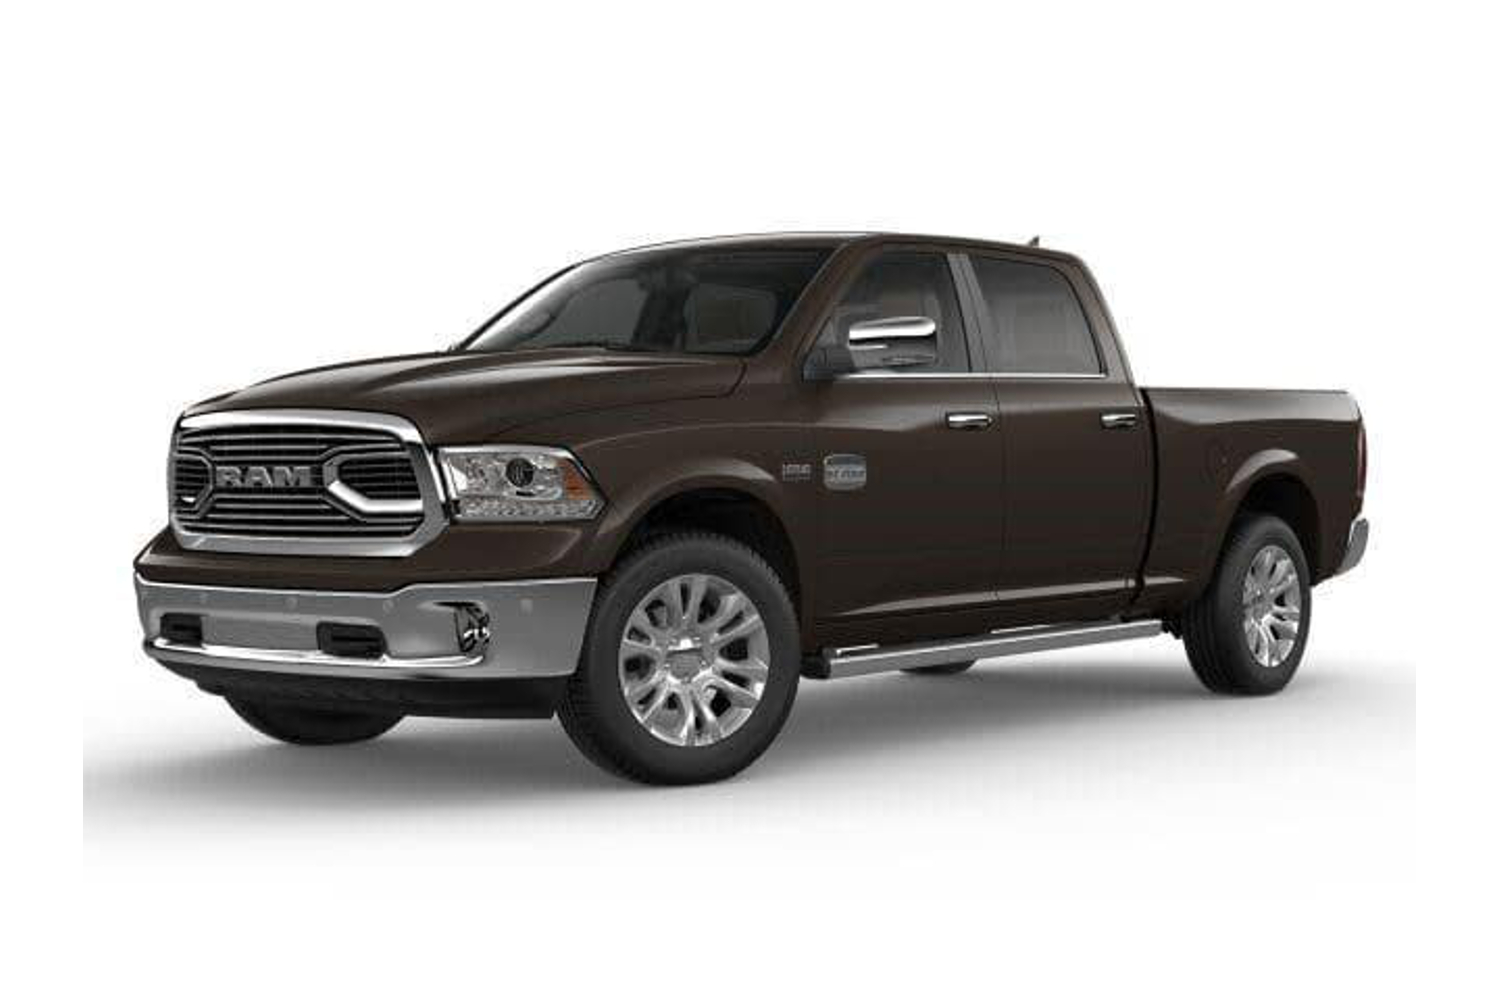 2018 dodge ram 1500 longhorn walnut brown metallic puw 01 handiri cars. Black Bedroom Furniture Sets. Home Design Ideas